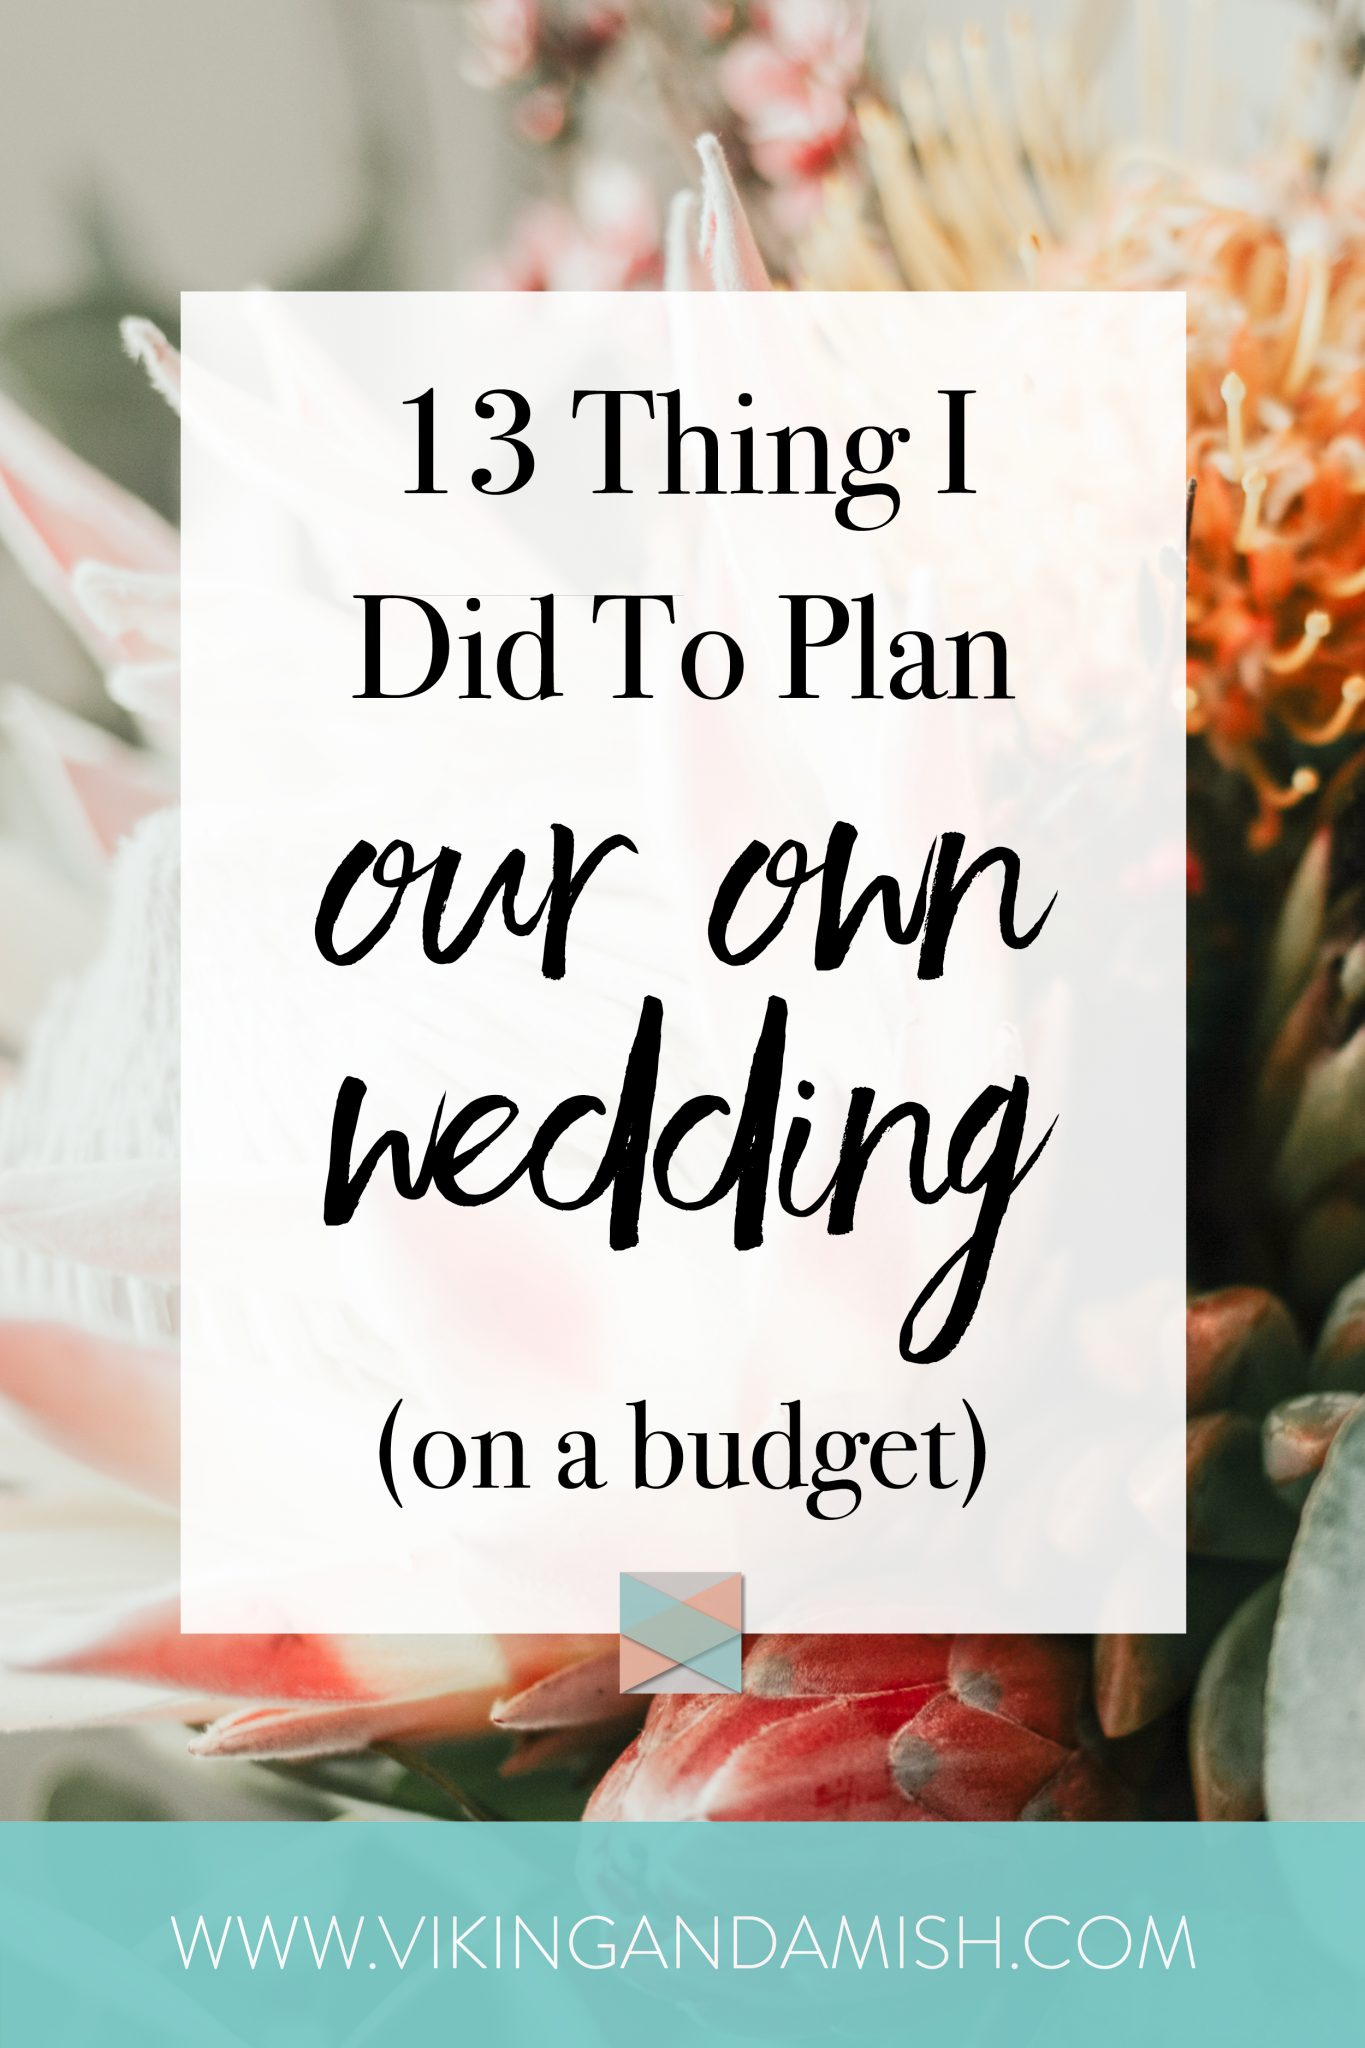 I was my own wedding planner. Are you looking to save some money and planning your wedding then read this blog. #wedding #weddingplanner #weddingplanning #inspiration #checklist #ideas